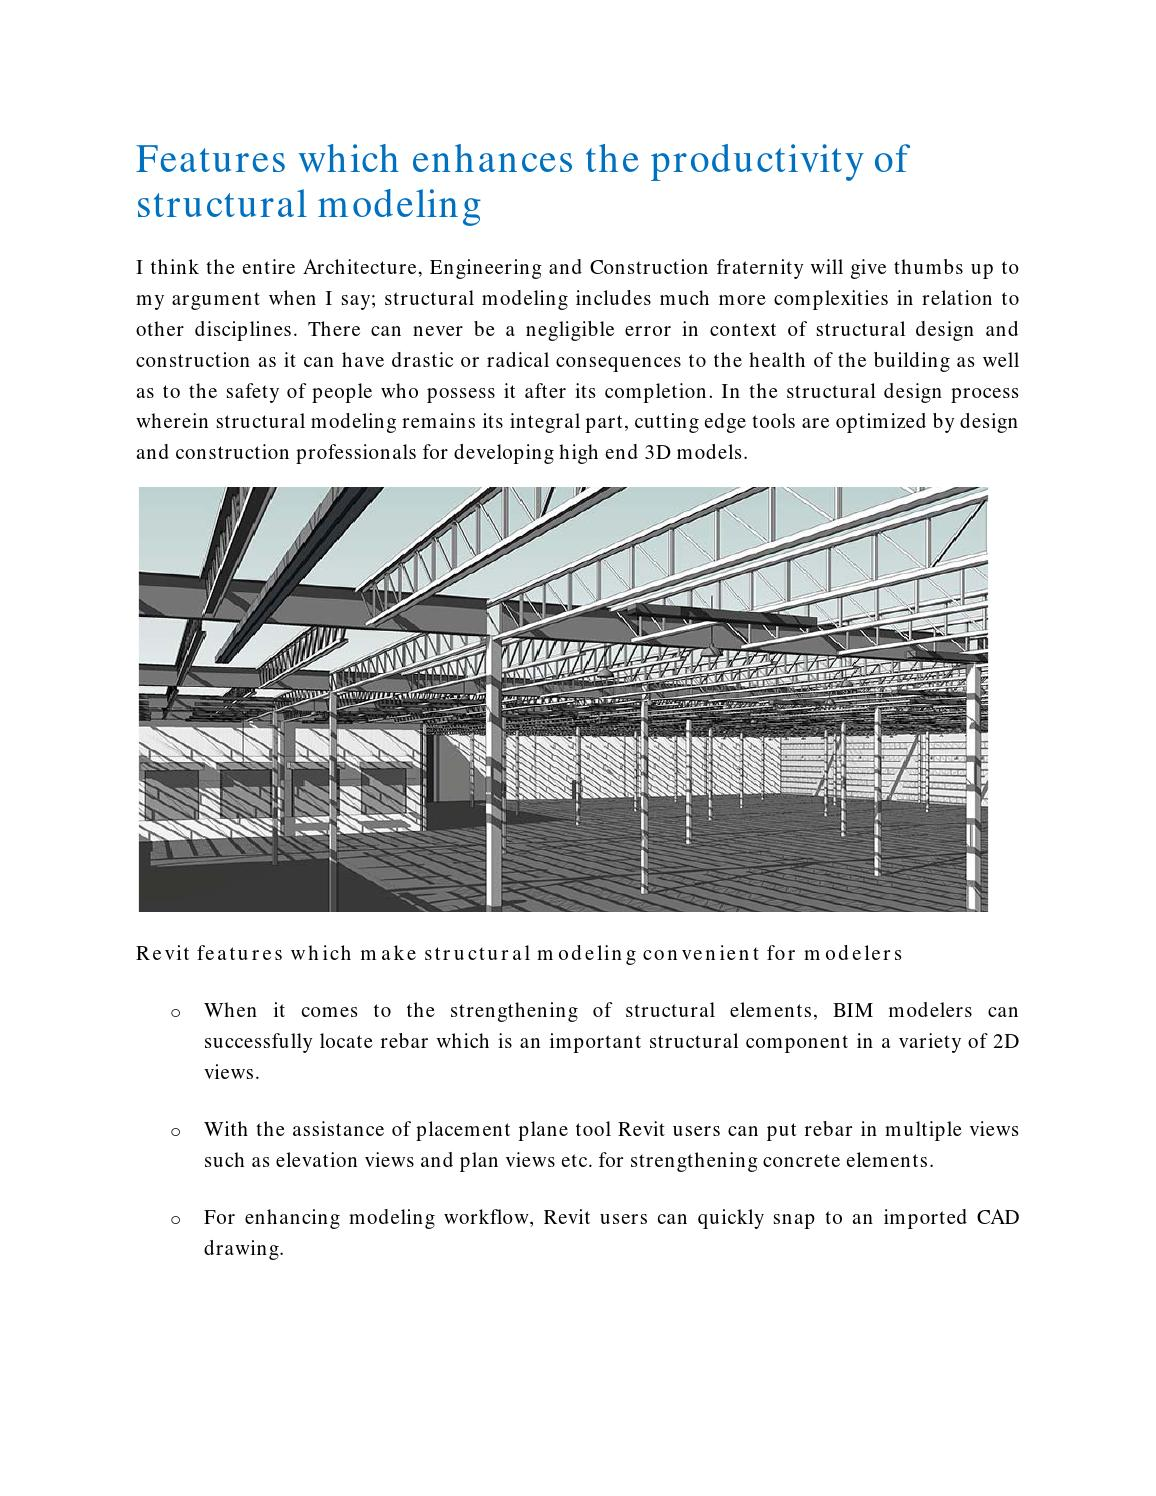 Features which enhances the productivity of structural modeling by